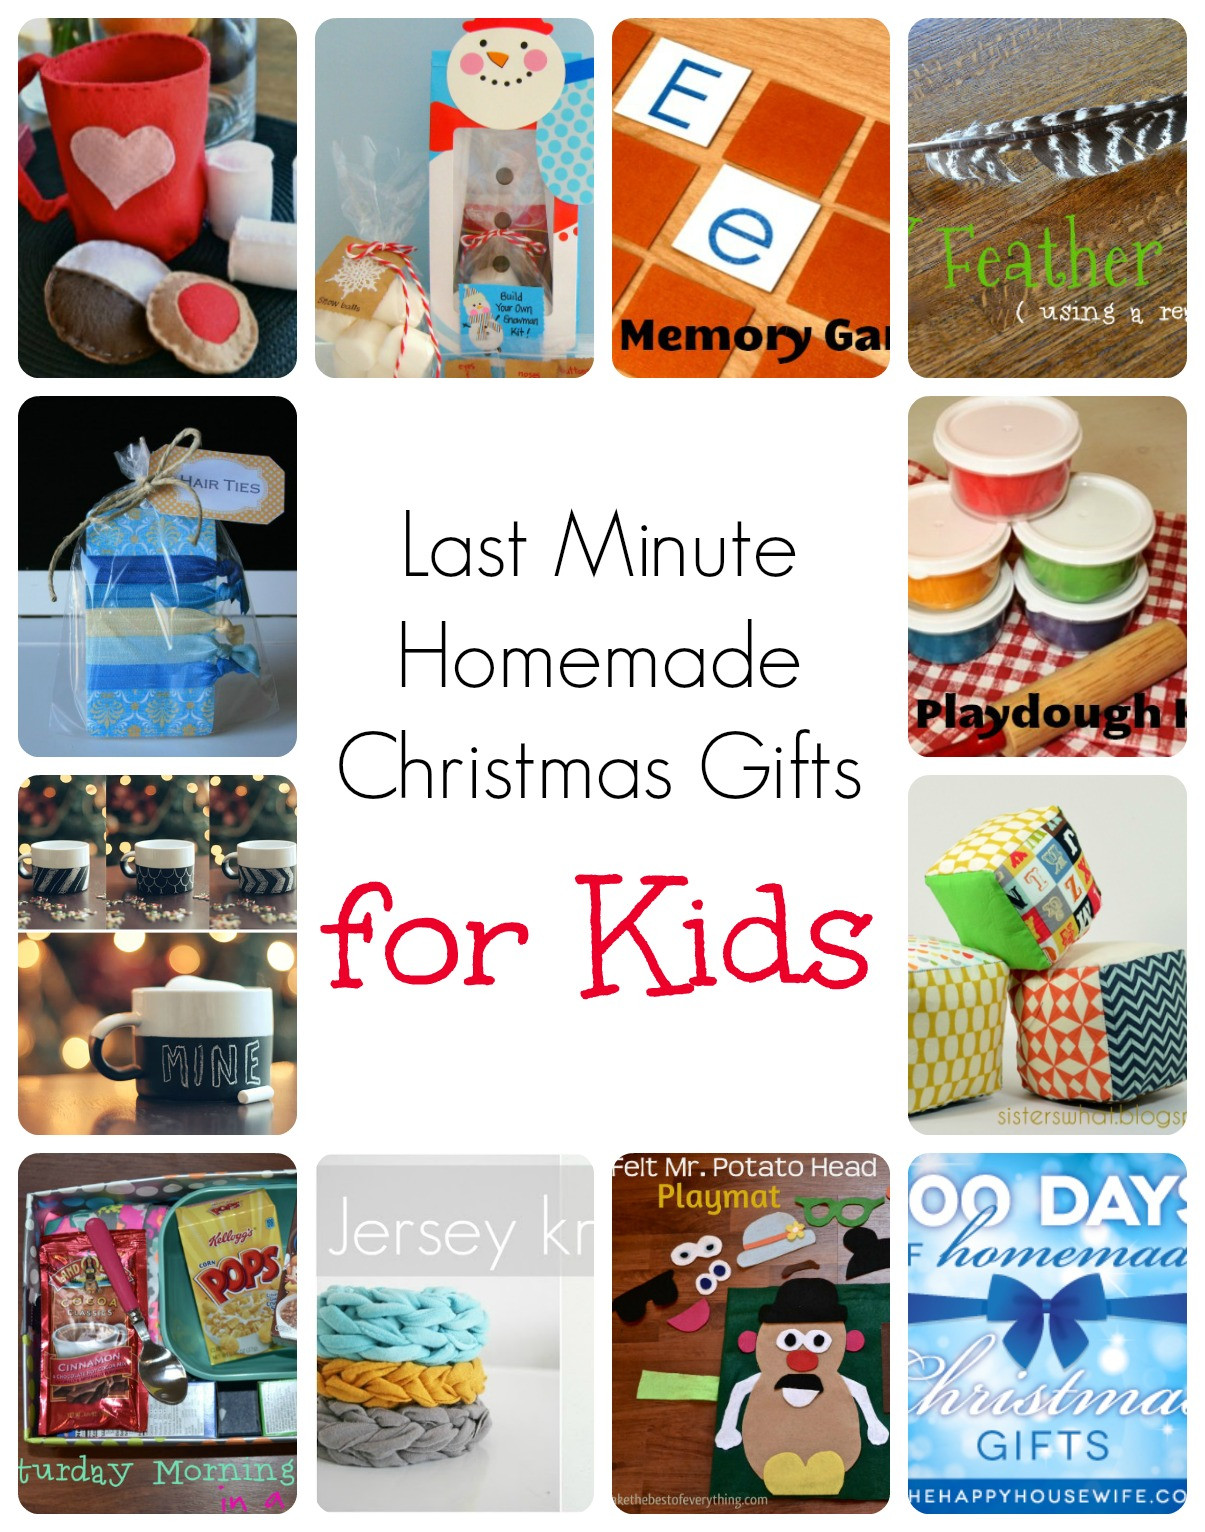 Best ideas about Handmade Christmas Gifts For Kids . Save or Pin Last Minute Homemade Christmas Gifts for Kids The Happy Now.